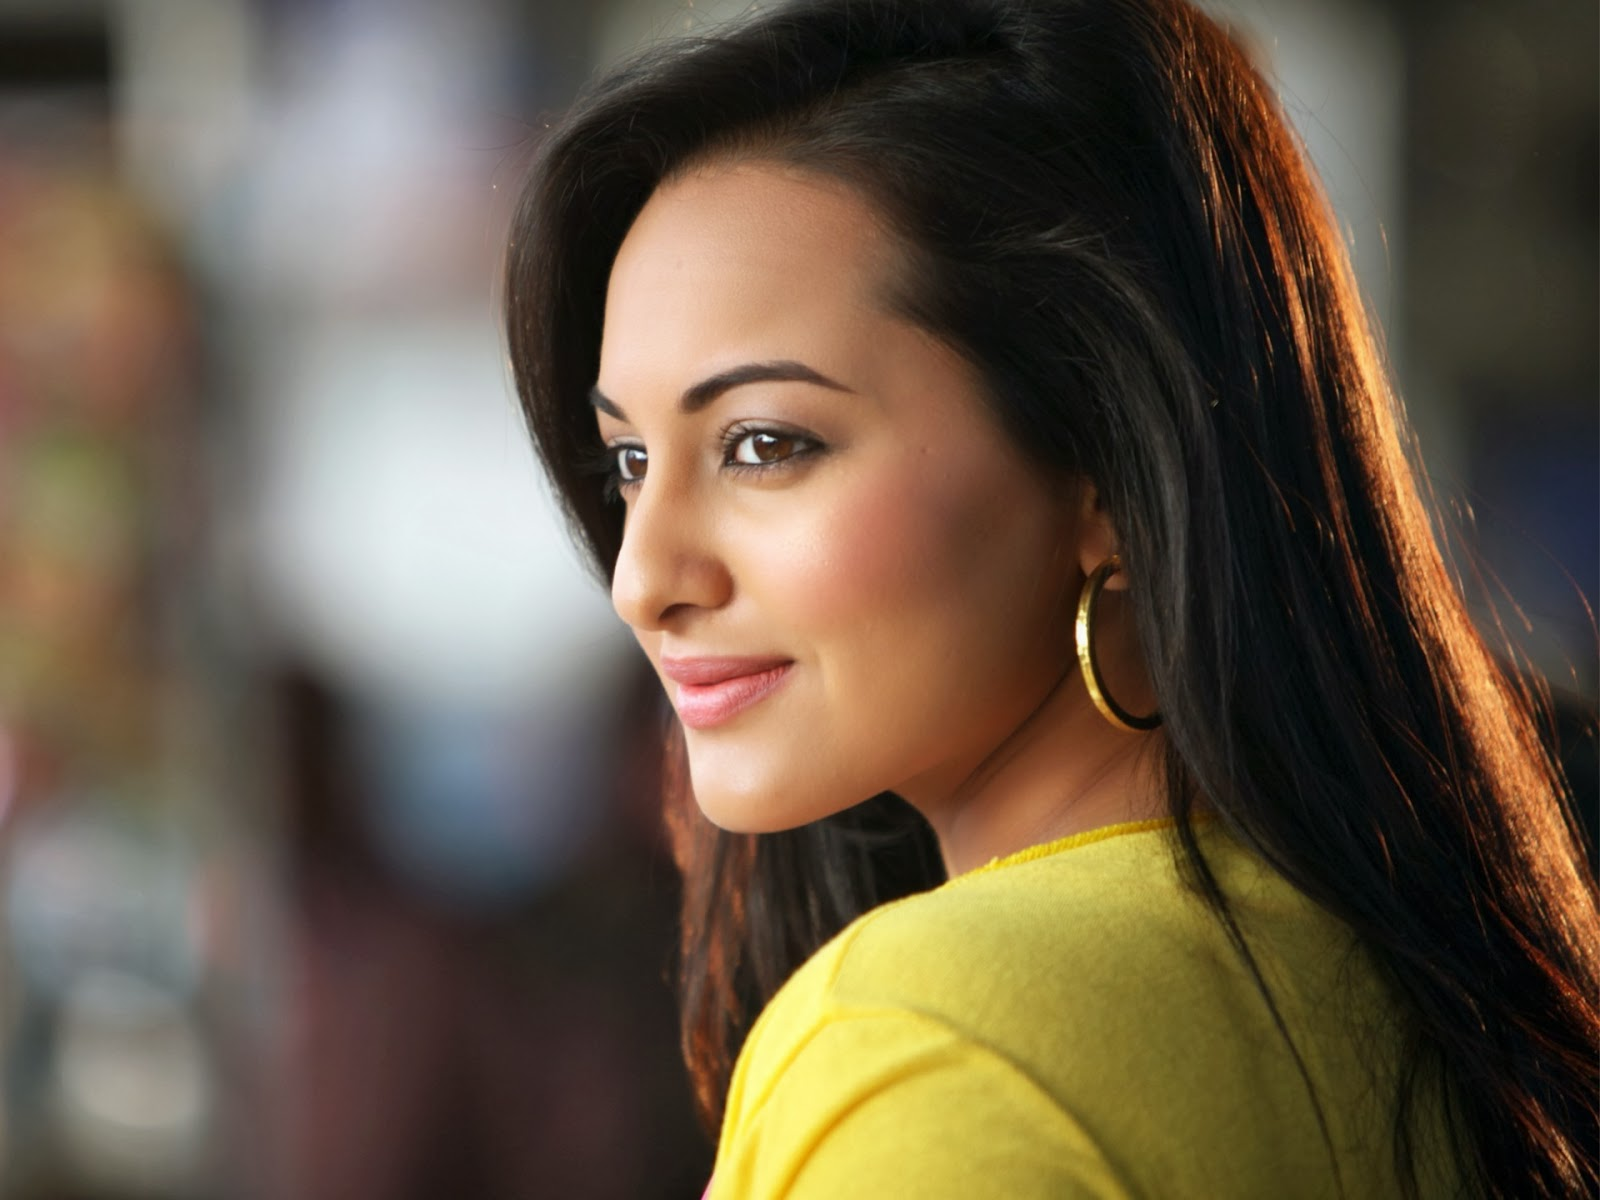 Indian Actress Wallpapers - Page 1 - HD Wallpapers